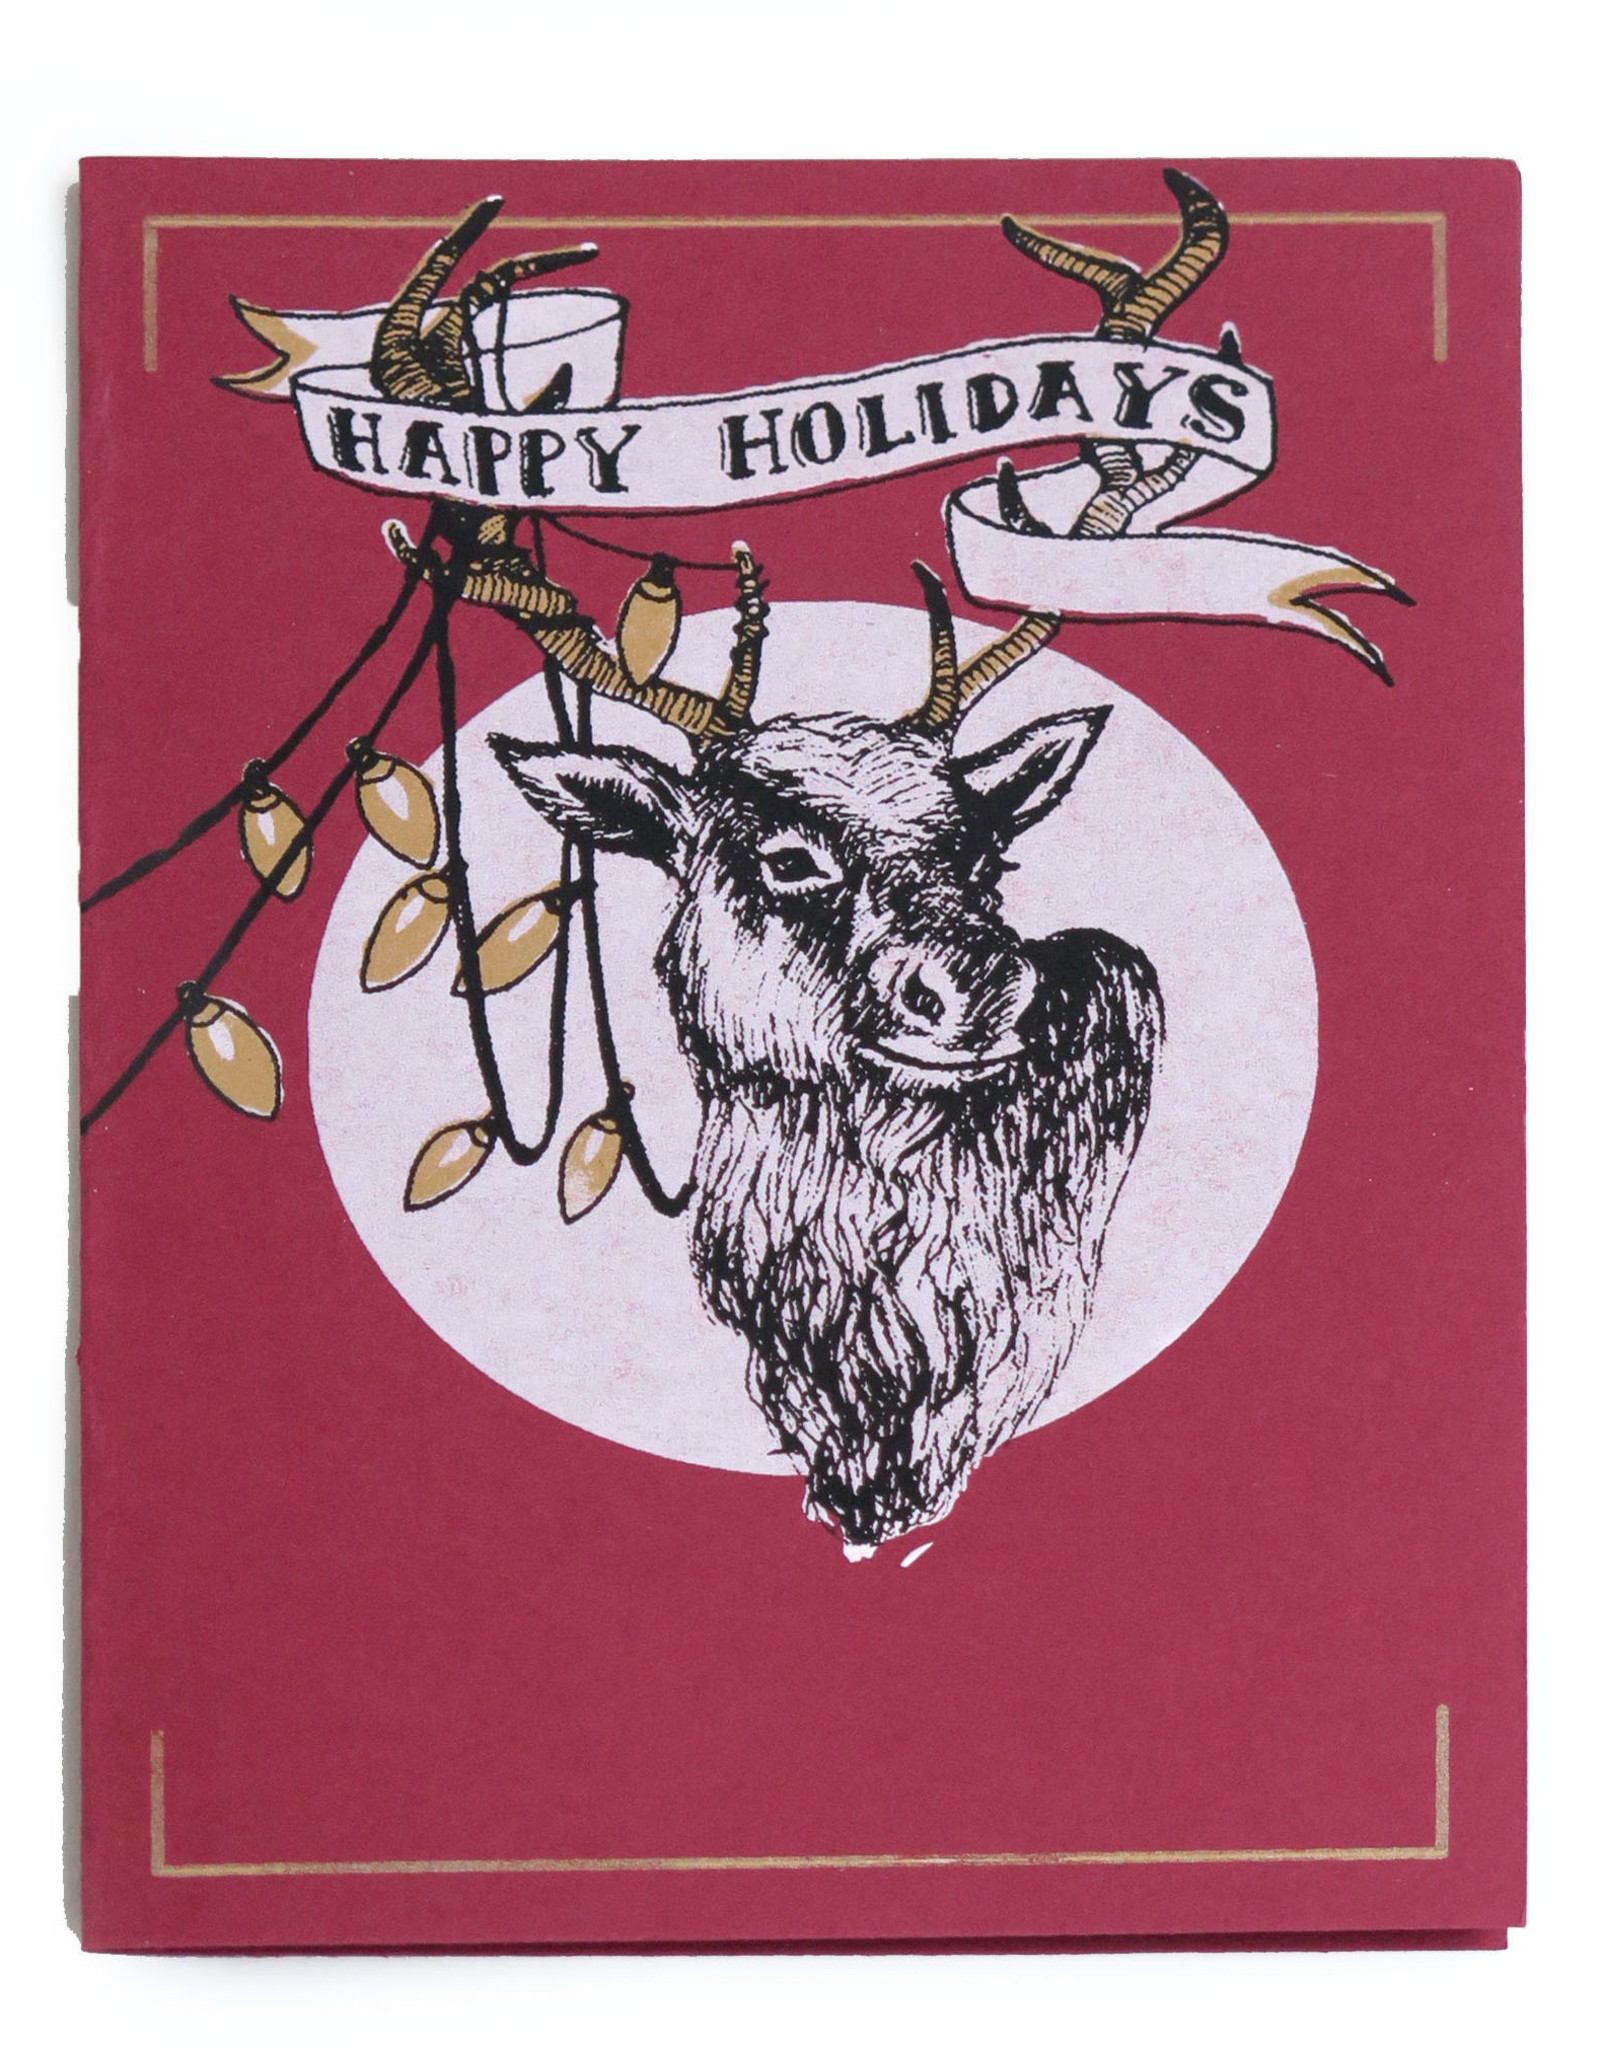 Tangled Deer Holiday Card (screenprint), Lily Cozzens